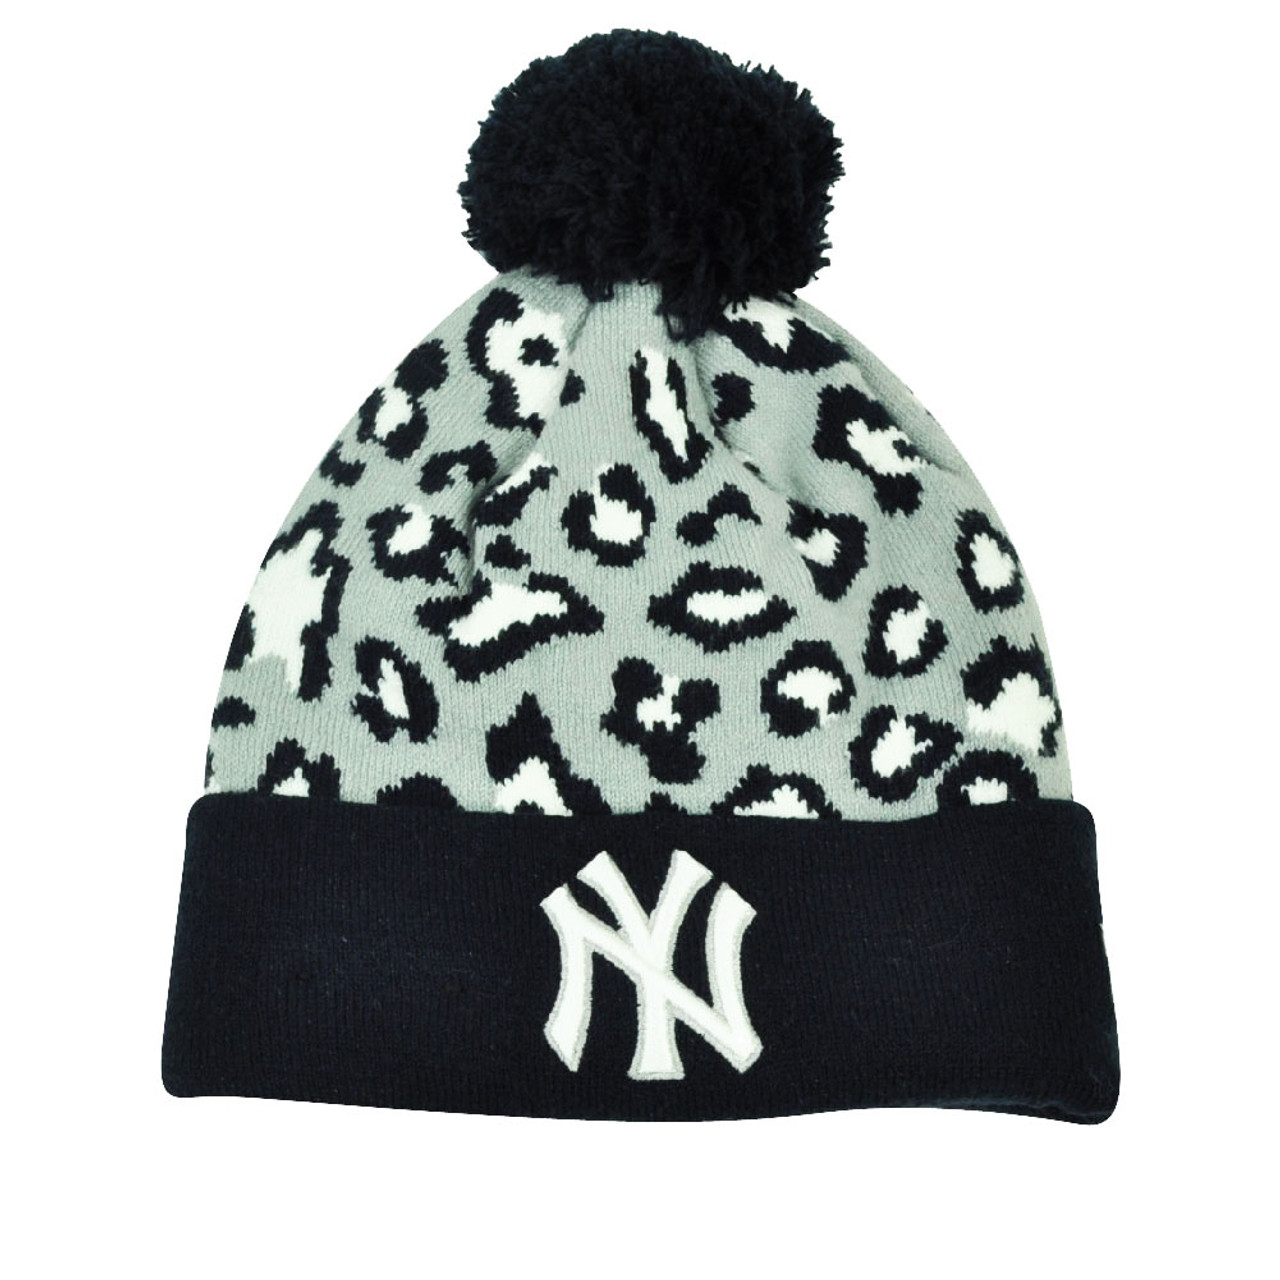 076ace5cc MLB New Era Winter Jungle New York Yankees Cheetah Knit Beanie Cuffed Hat  Toque - Cap Store Online.com